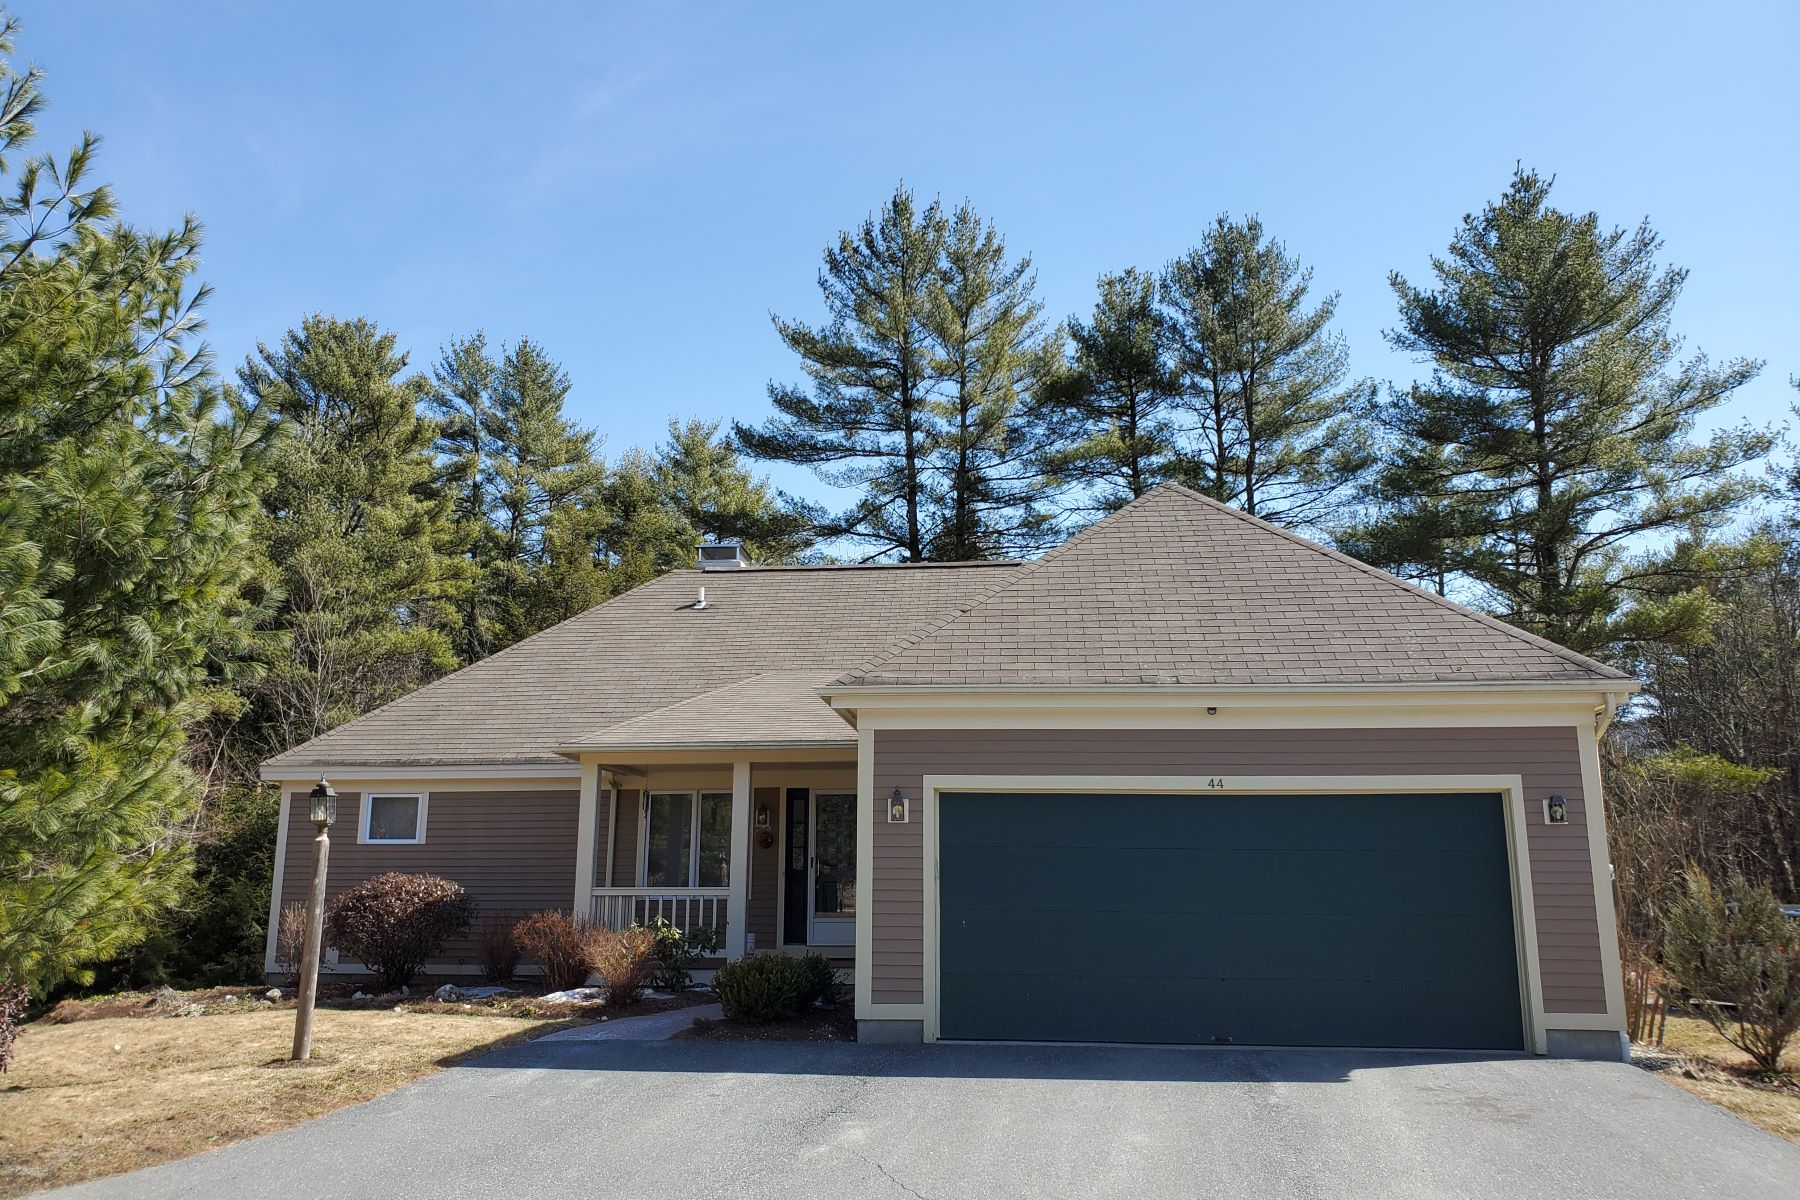 Single Family Homes for Sale at Three Bedroom Free Standing Condo in Hanover 44 Berrill Farms Lane Hanover, New Hampshire 03755 United States